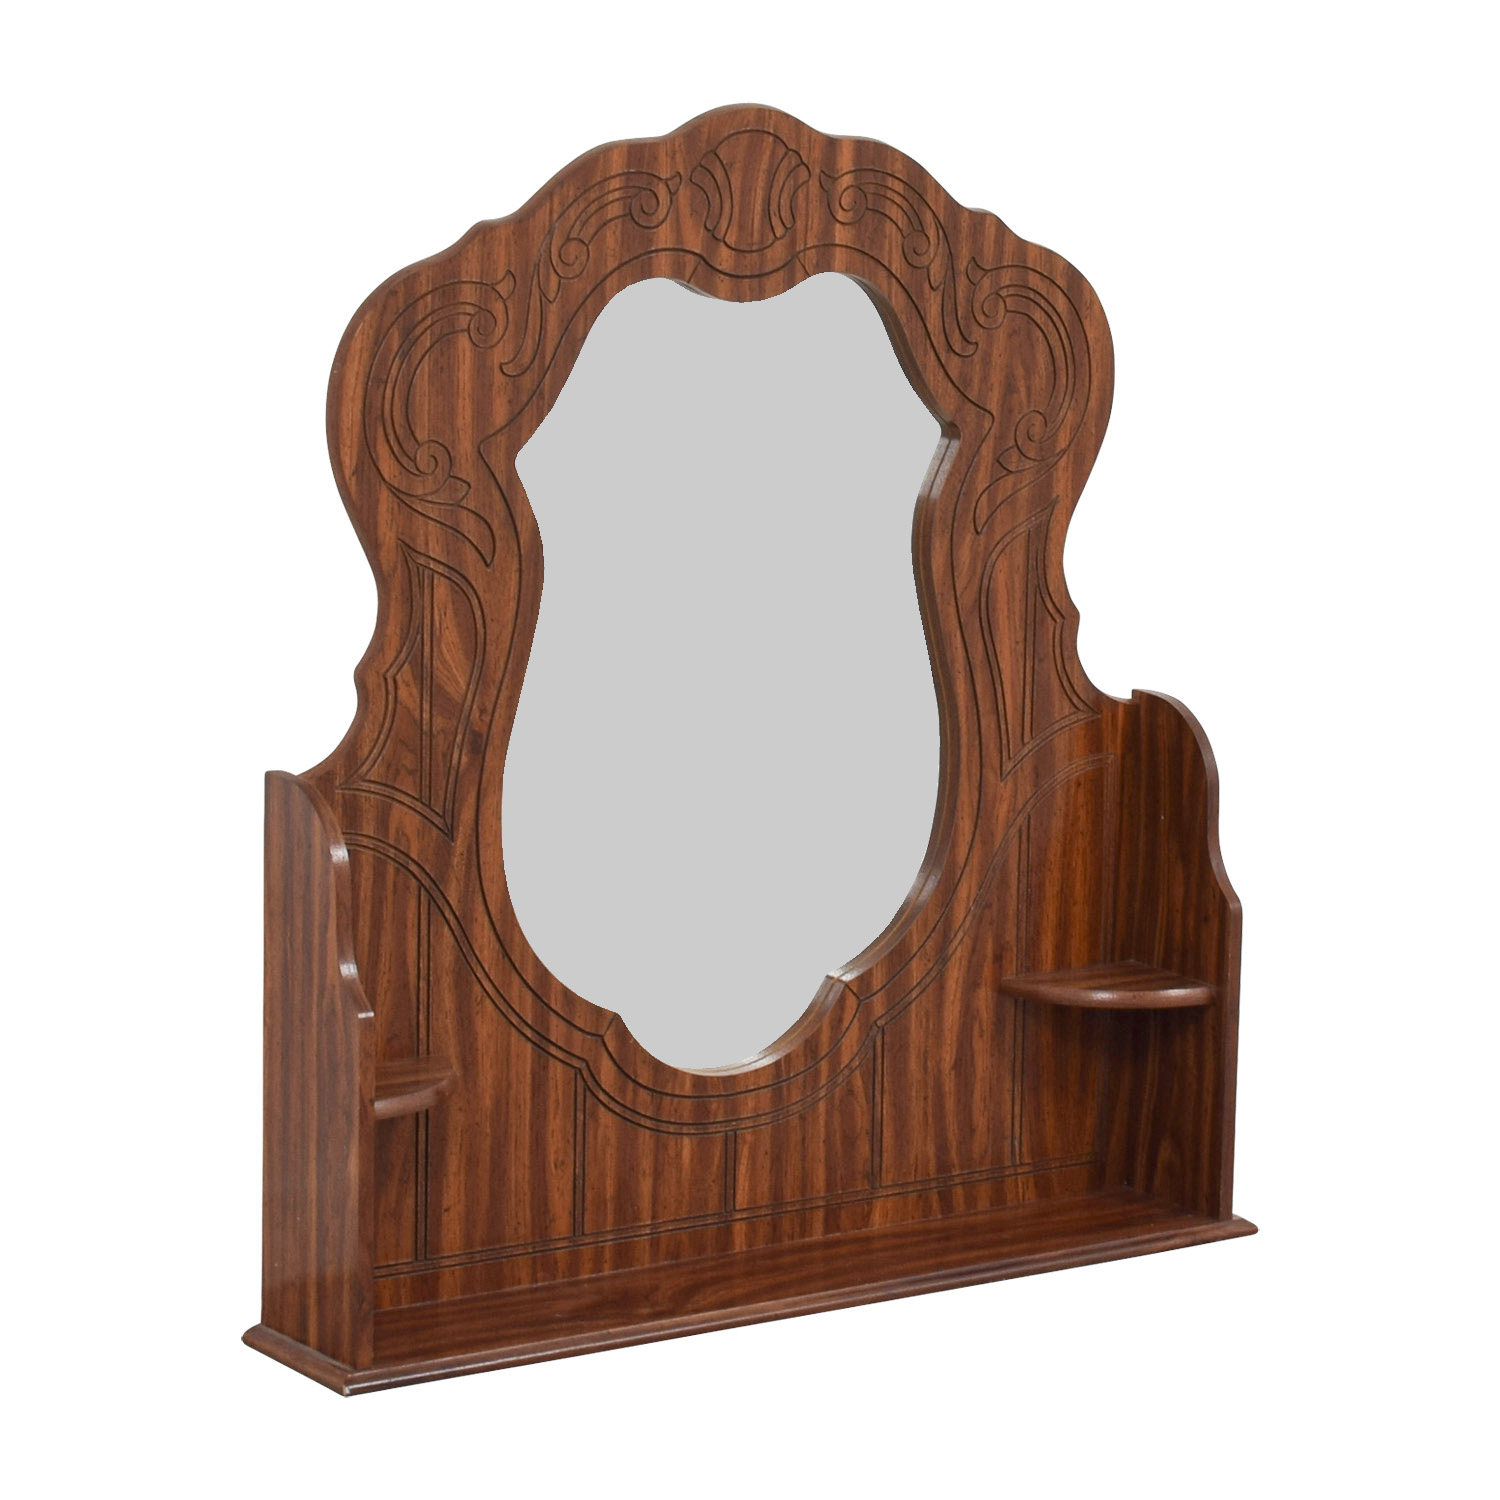 Wood Mirror for Dresser used